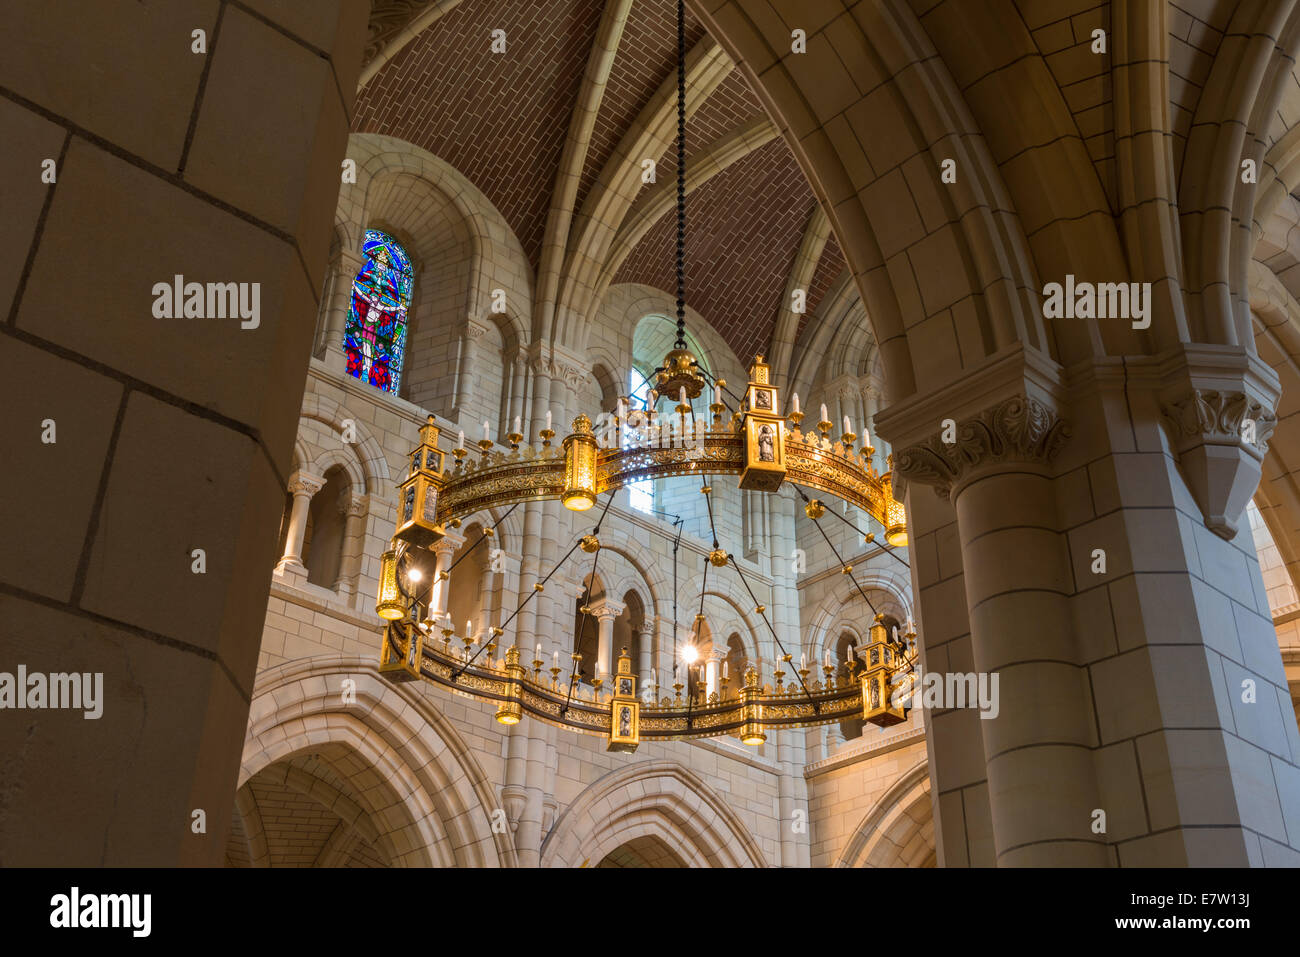 The interior of buckfast abbey hangs the chandelier corona lucis the interior of buckfast abbey hangs the chandelier corona lucis above the high altar and stained glass windows mozeypictures Images